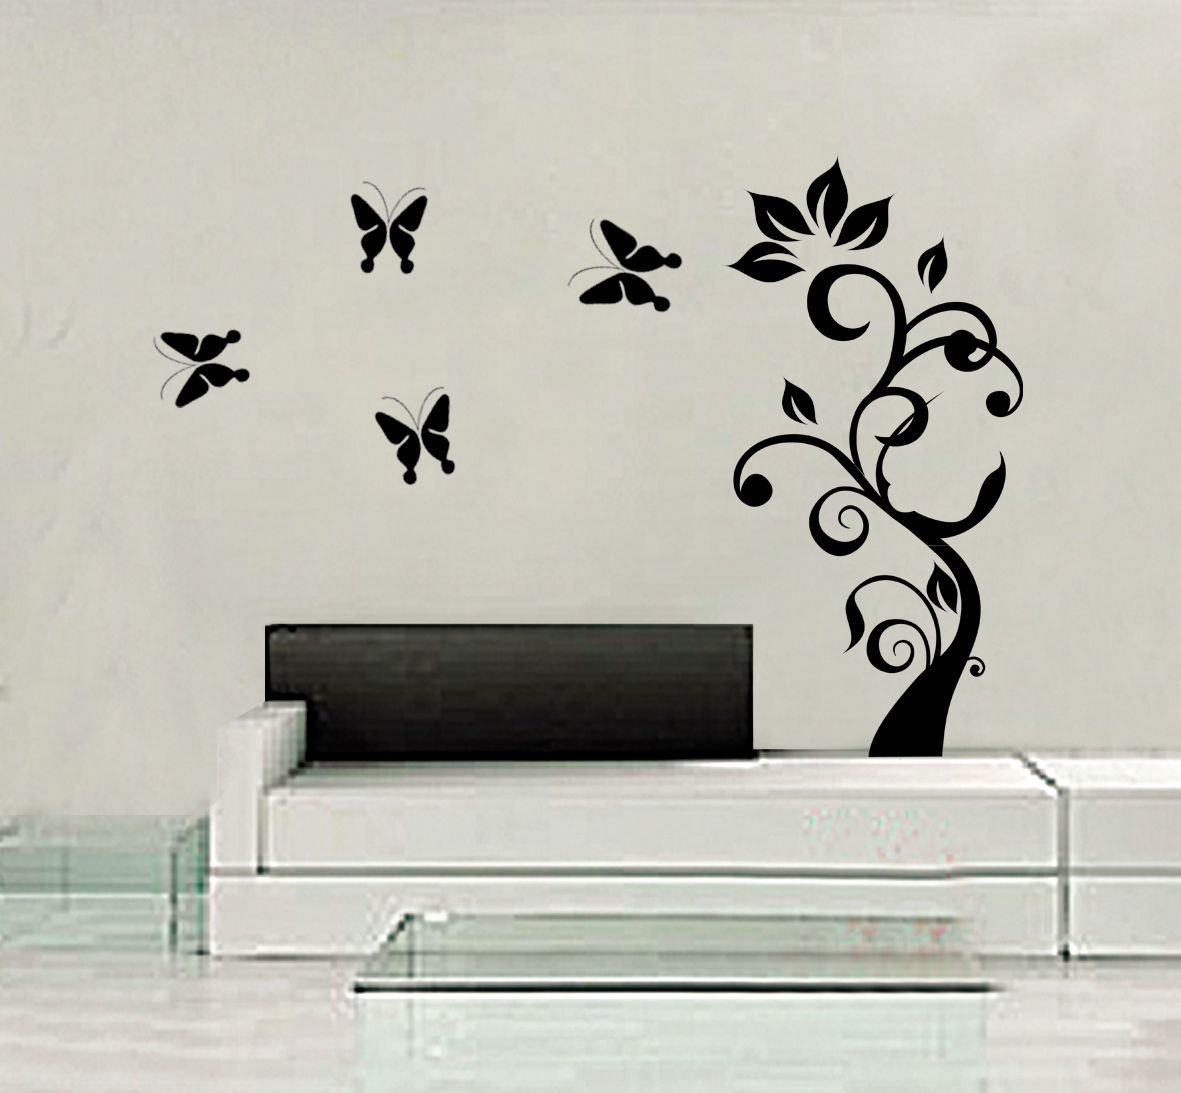 Tree Butterfly DIY Art Wall Decal Decor Room Sticker Vinyl Removable Paper Mural ws106(China (Mainland))